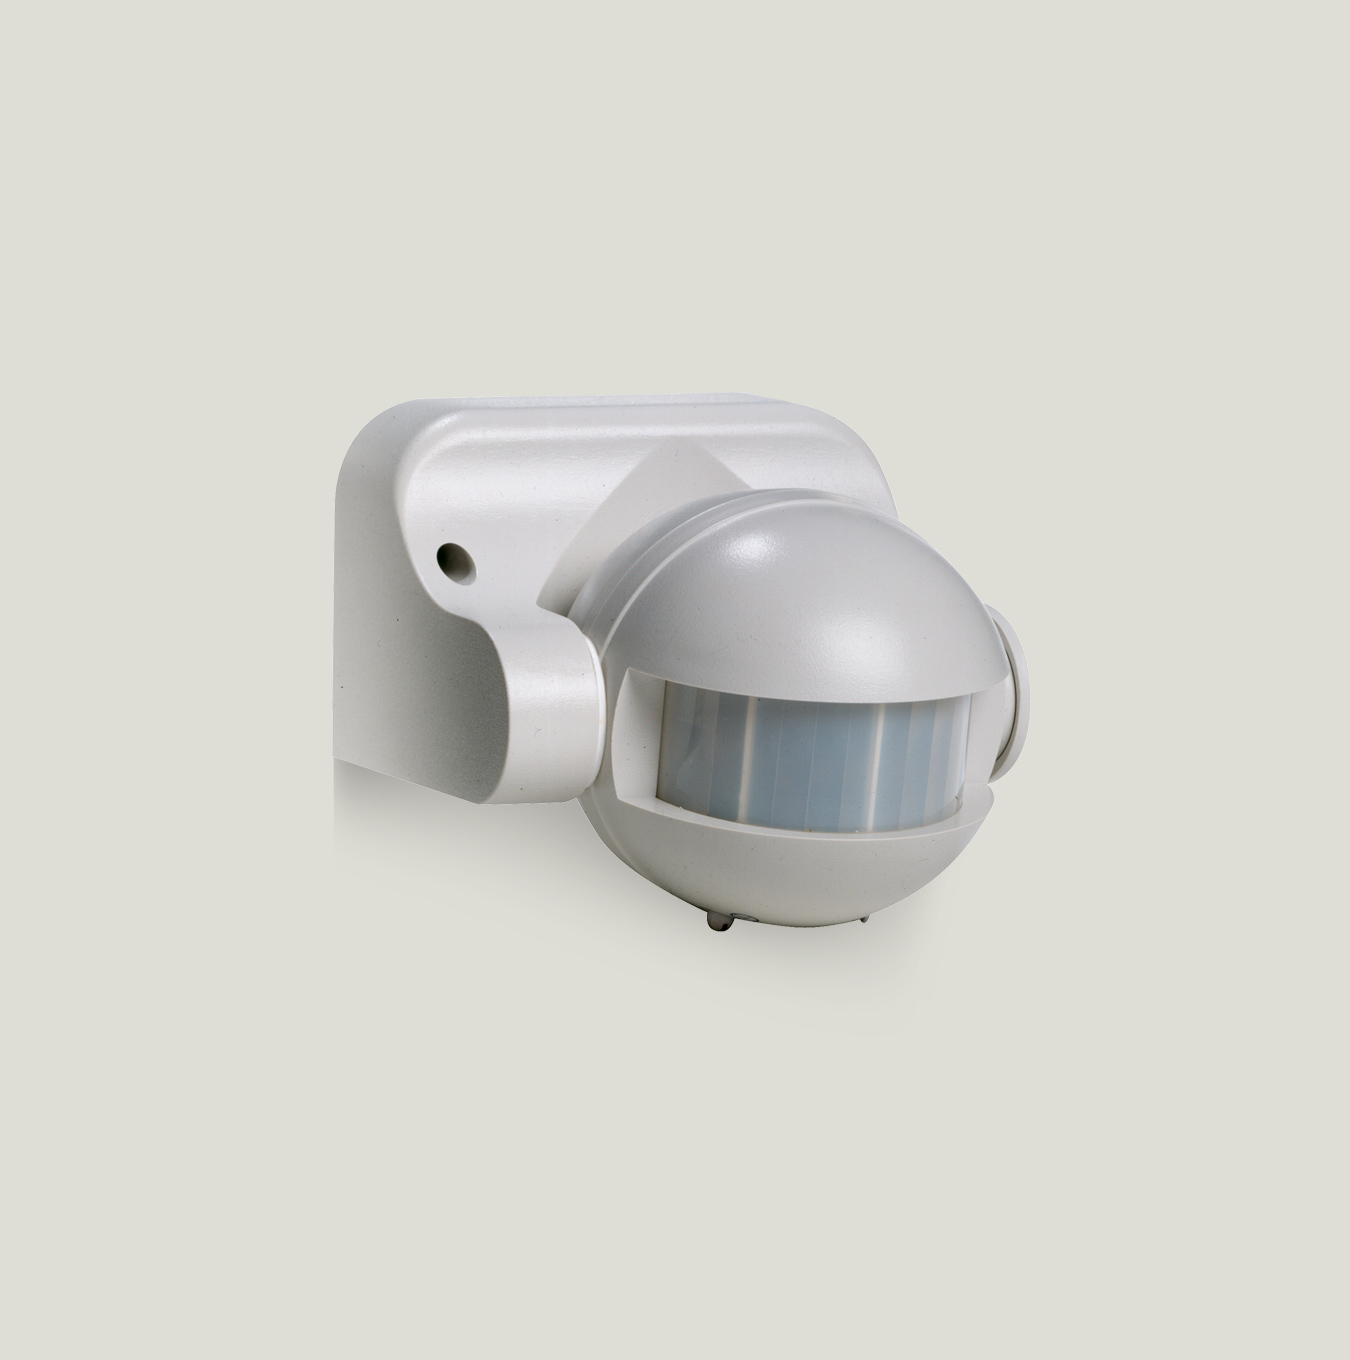 hight resolution of product variations automatic with manual override 630 3 automatic mode only